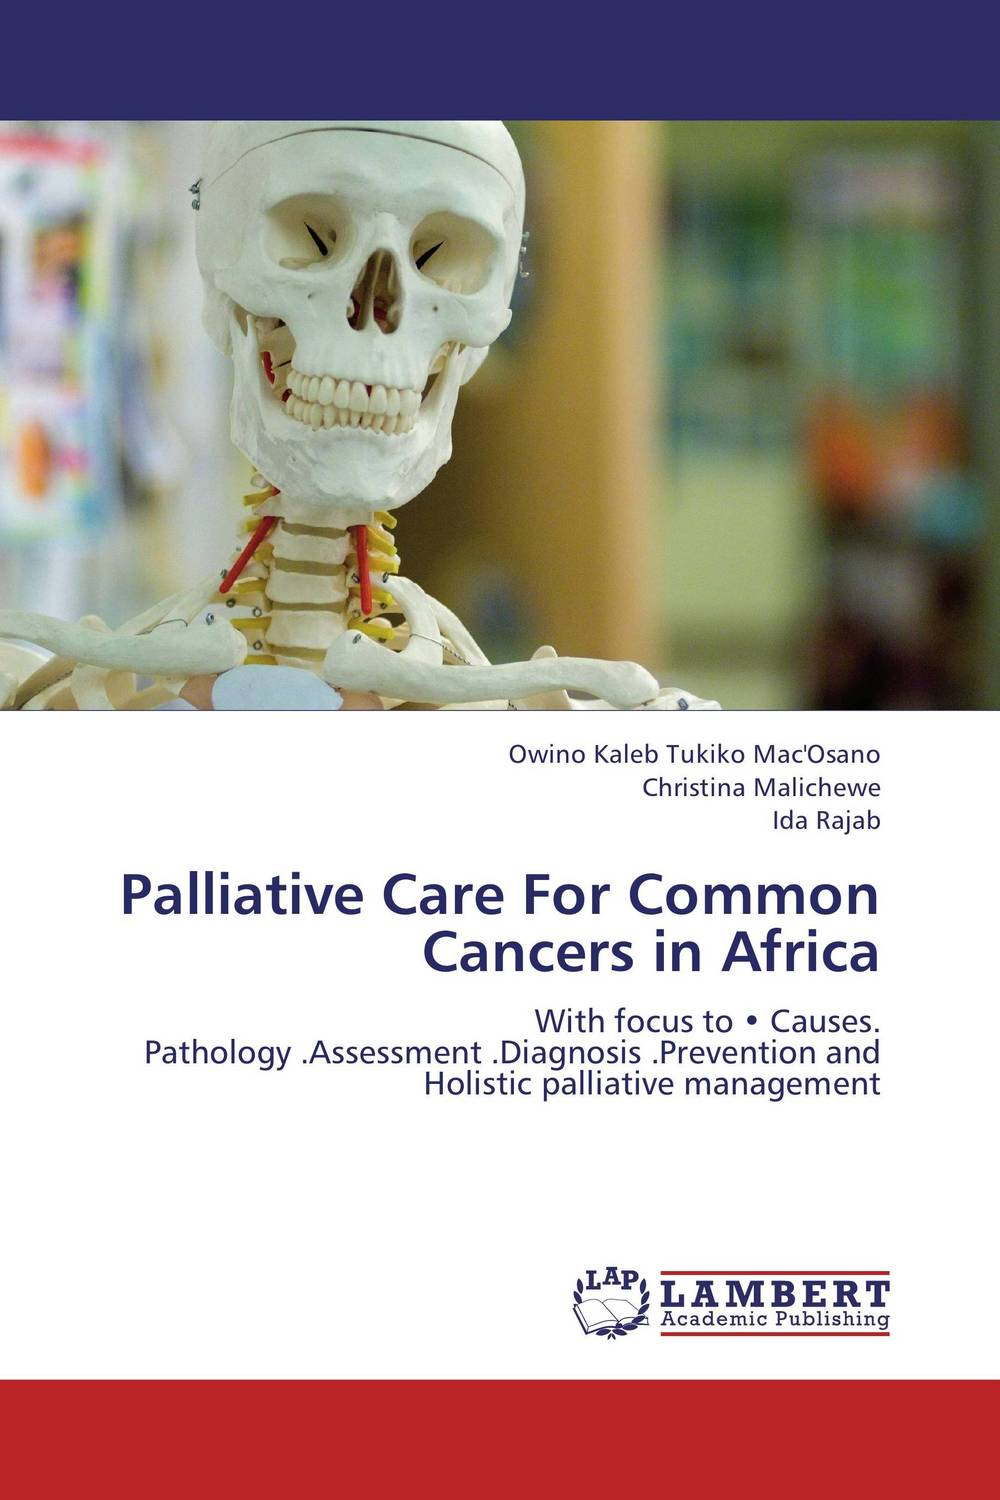 Palliative Care For Common Cancers in Africa куклы и одежда для кукол llorens кукла бэбита роза 26 см